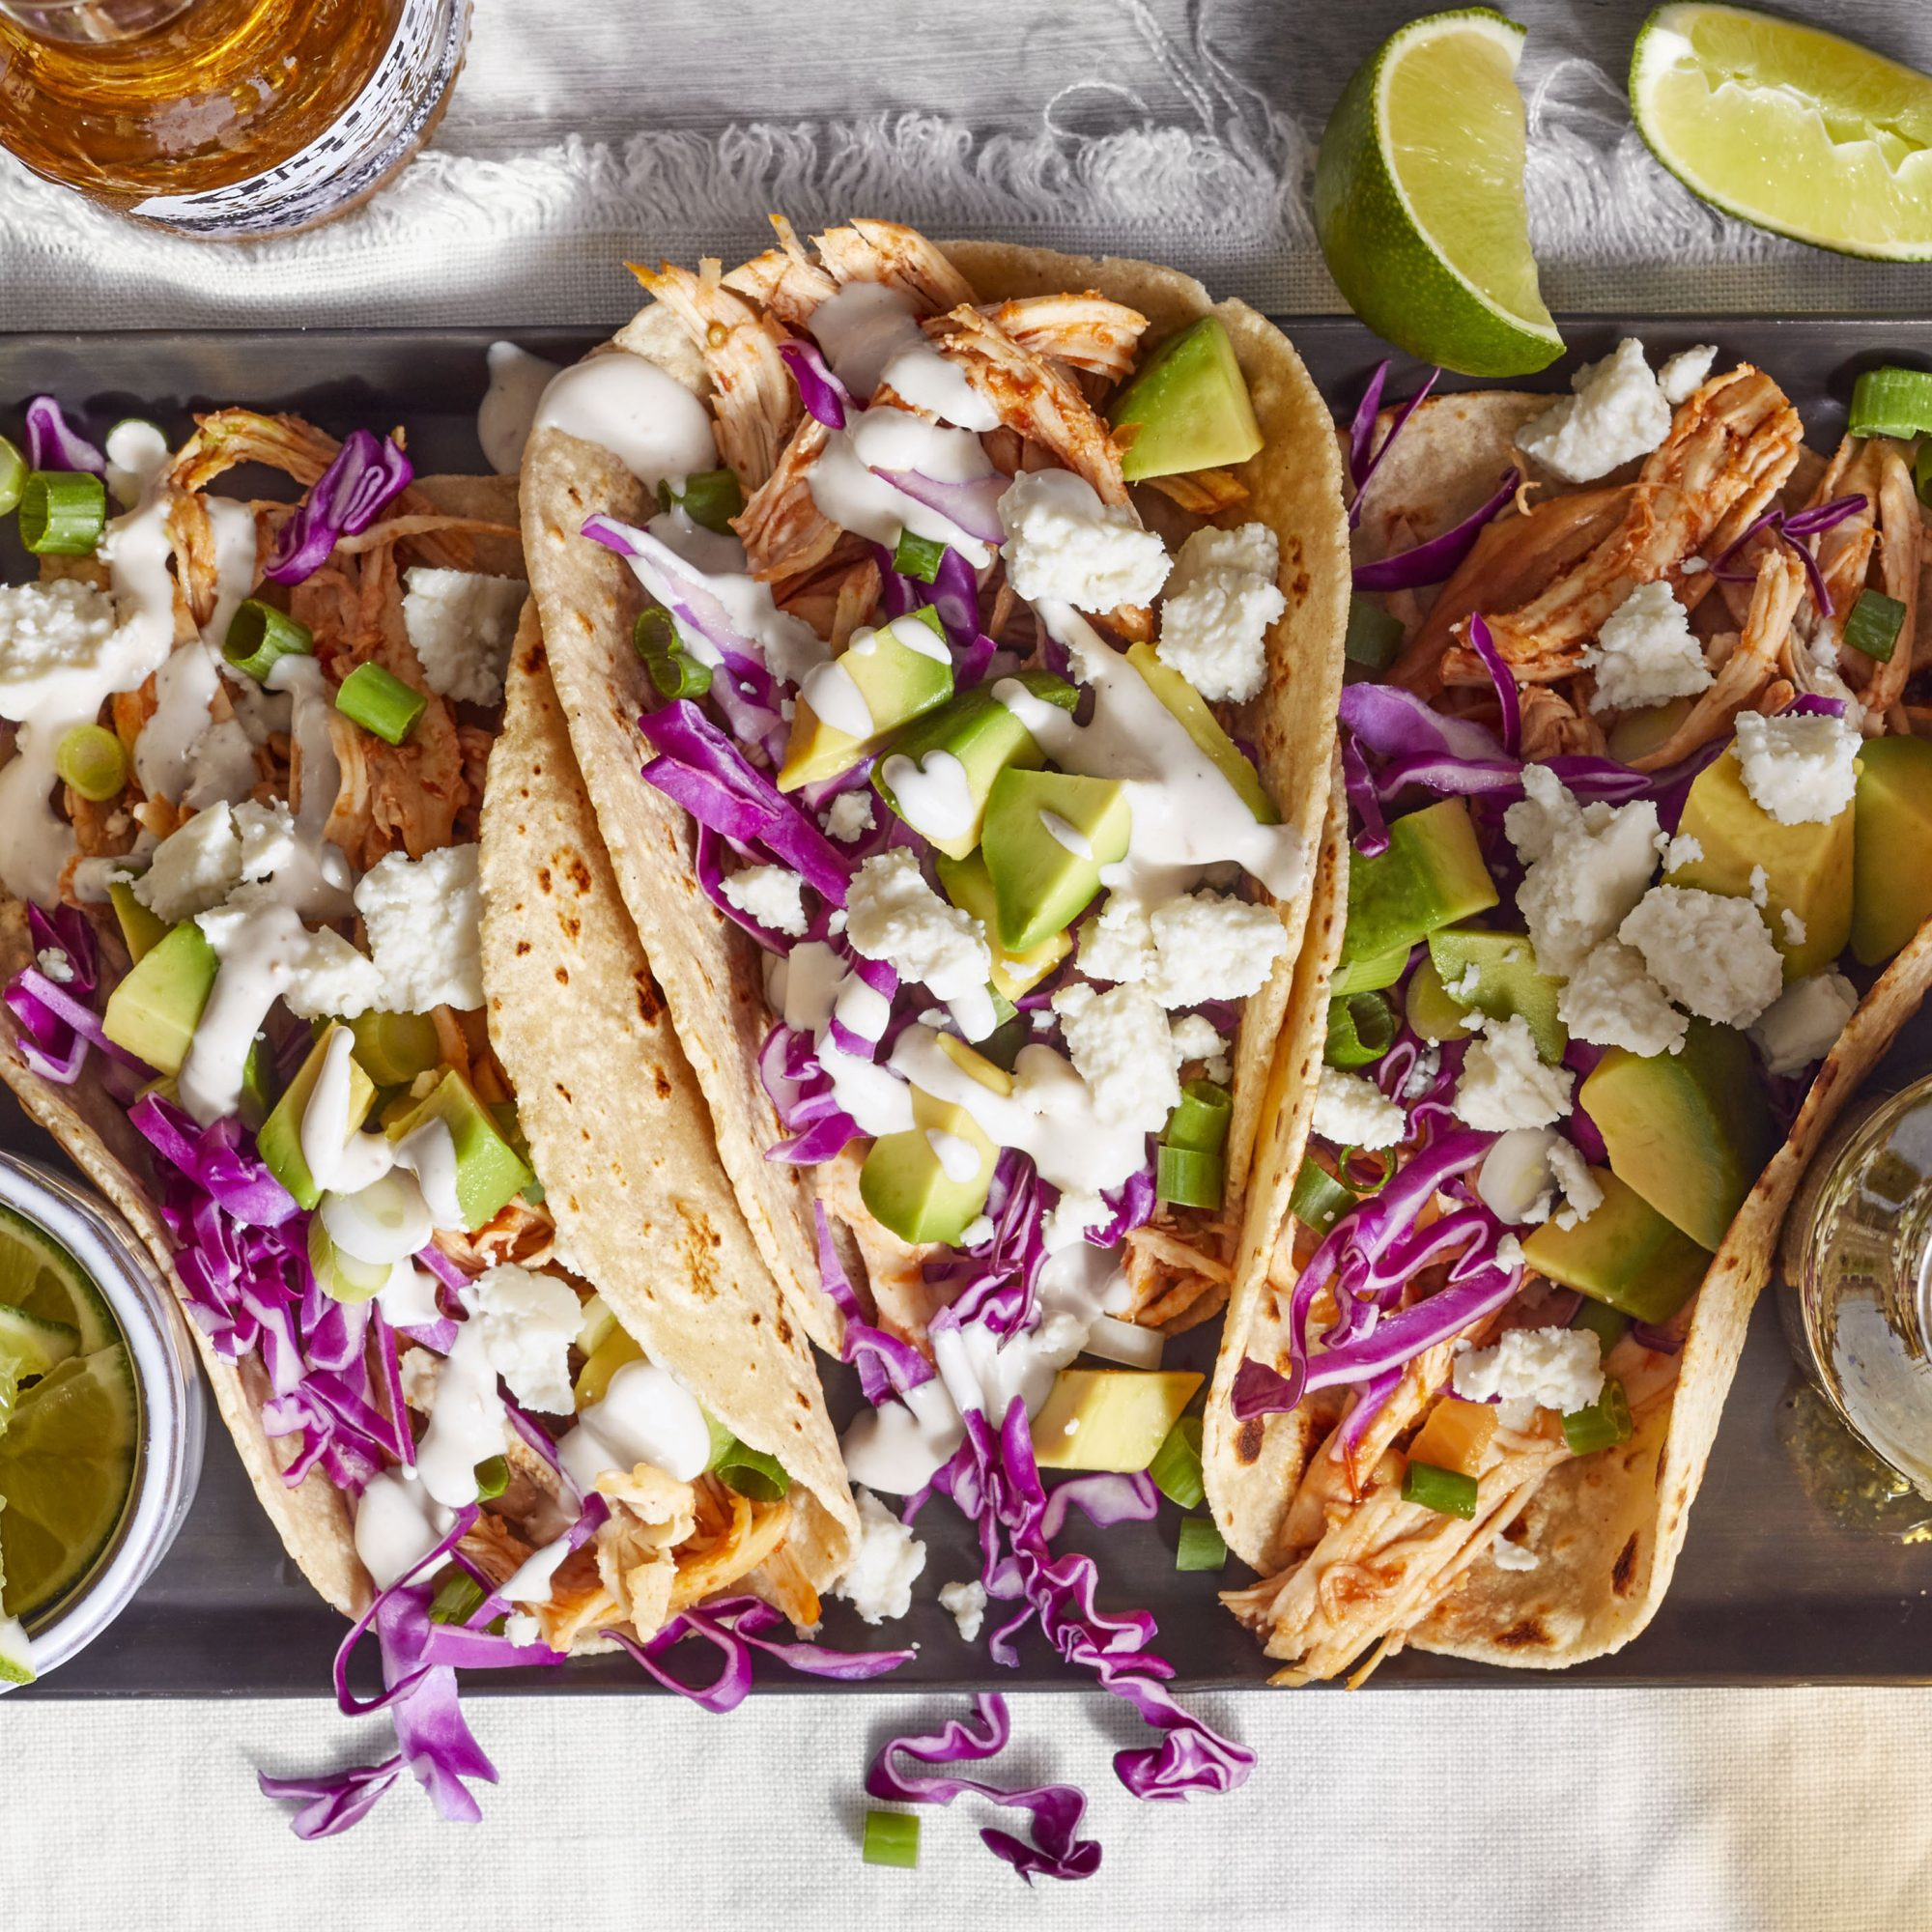 leftover turkey in tortillas with cabbage, avocado, and cream sauce